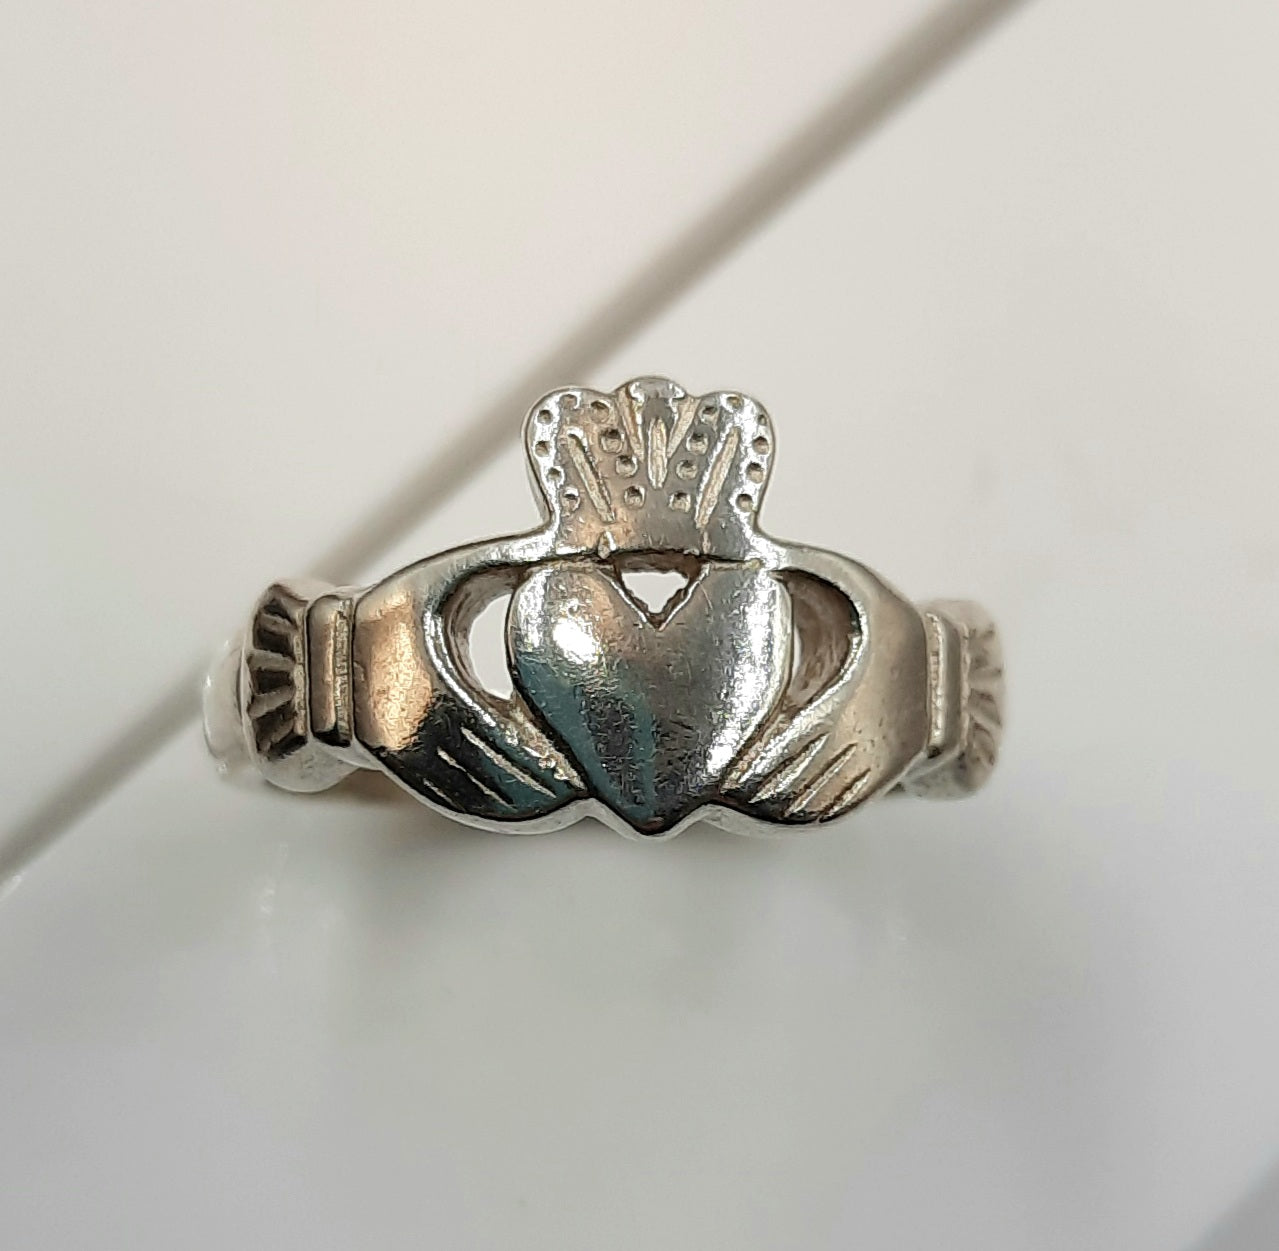 Gents Claddagh sterling silver ring